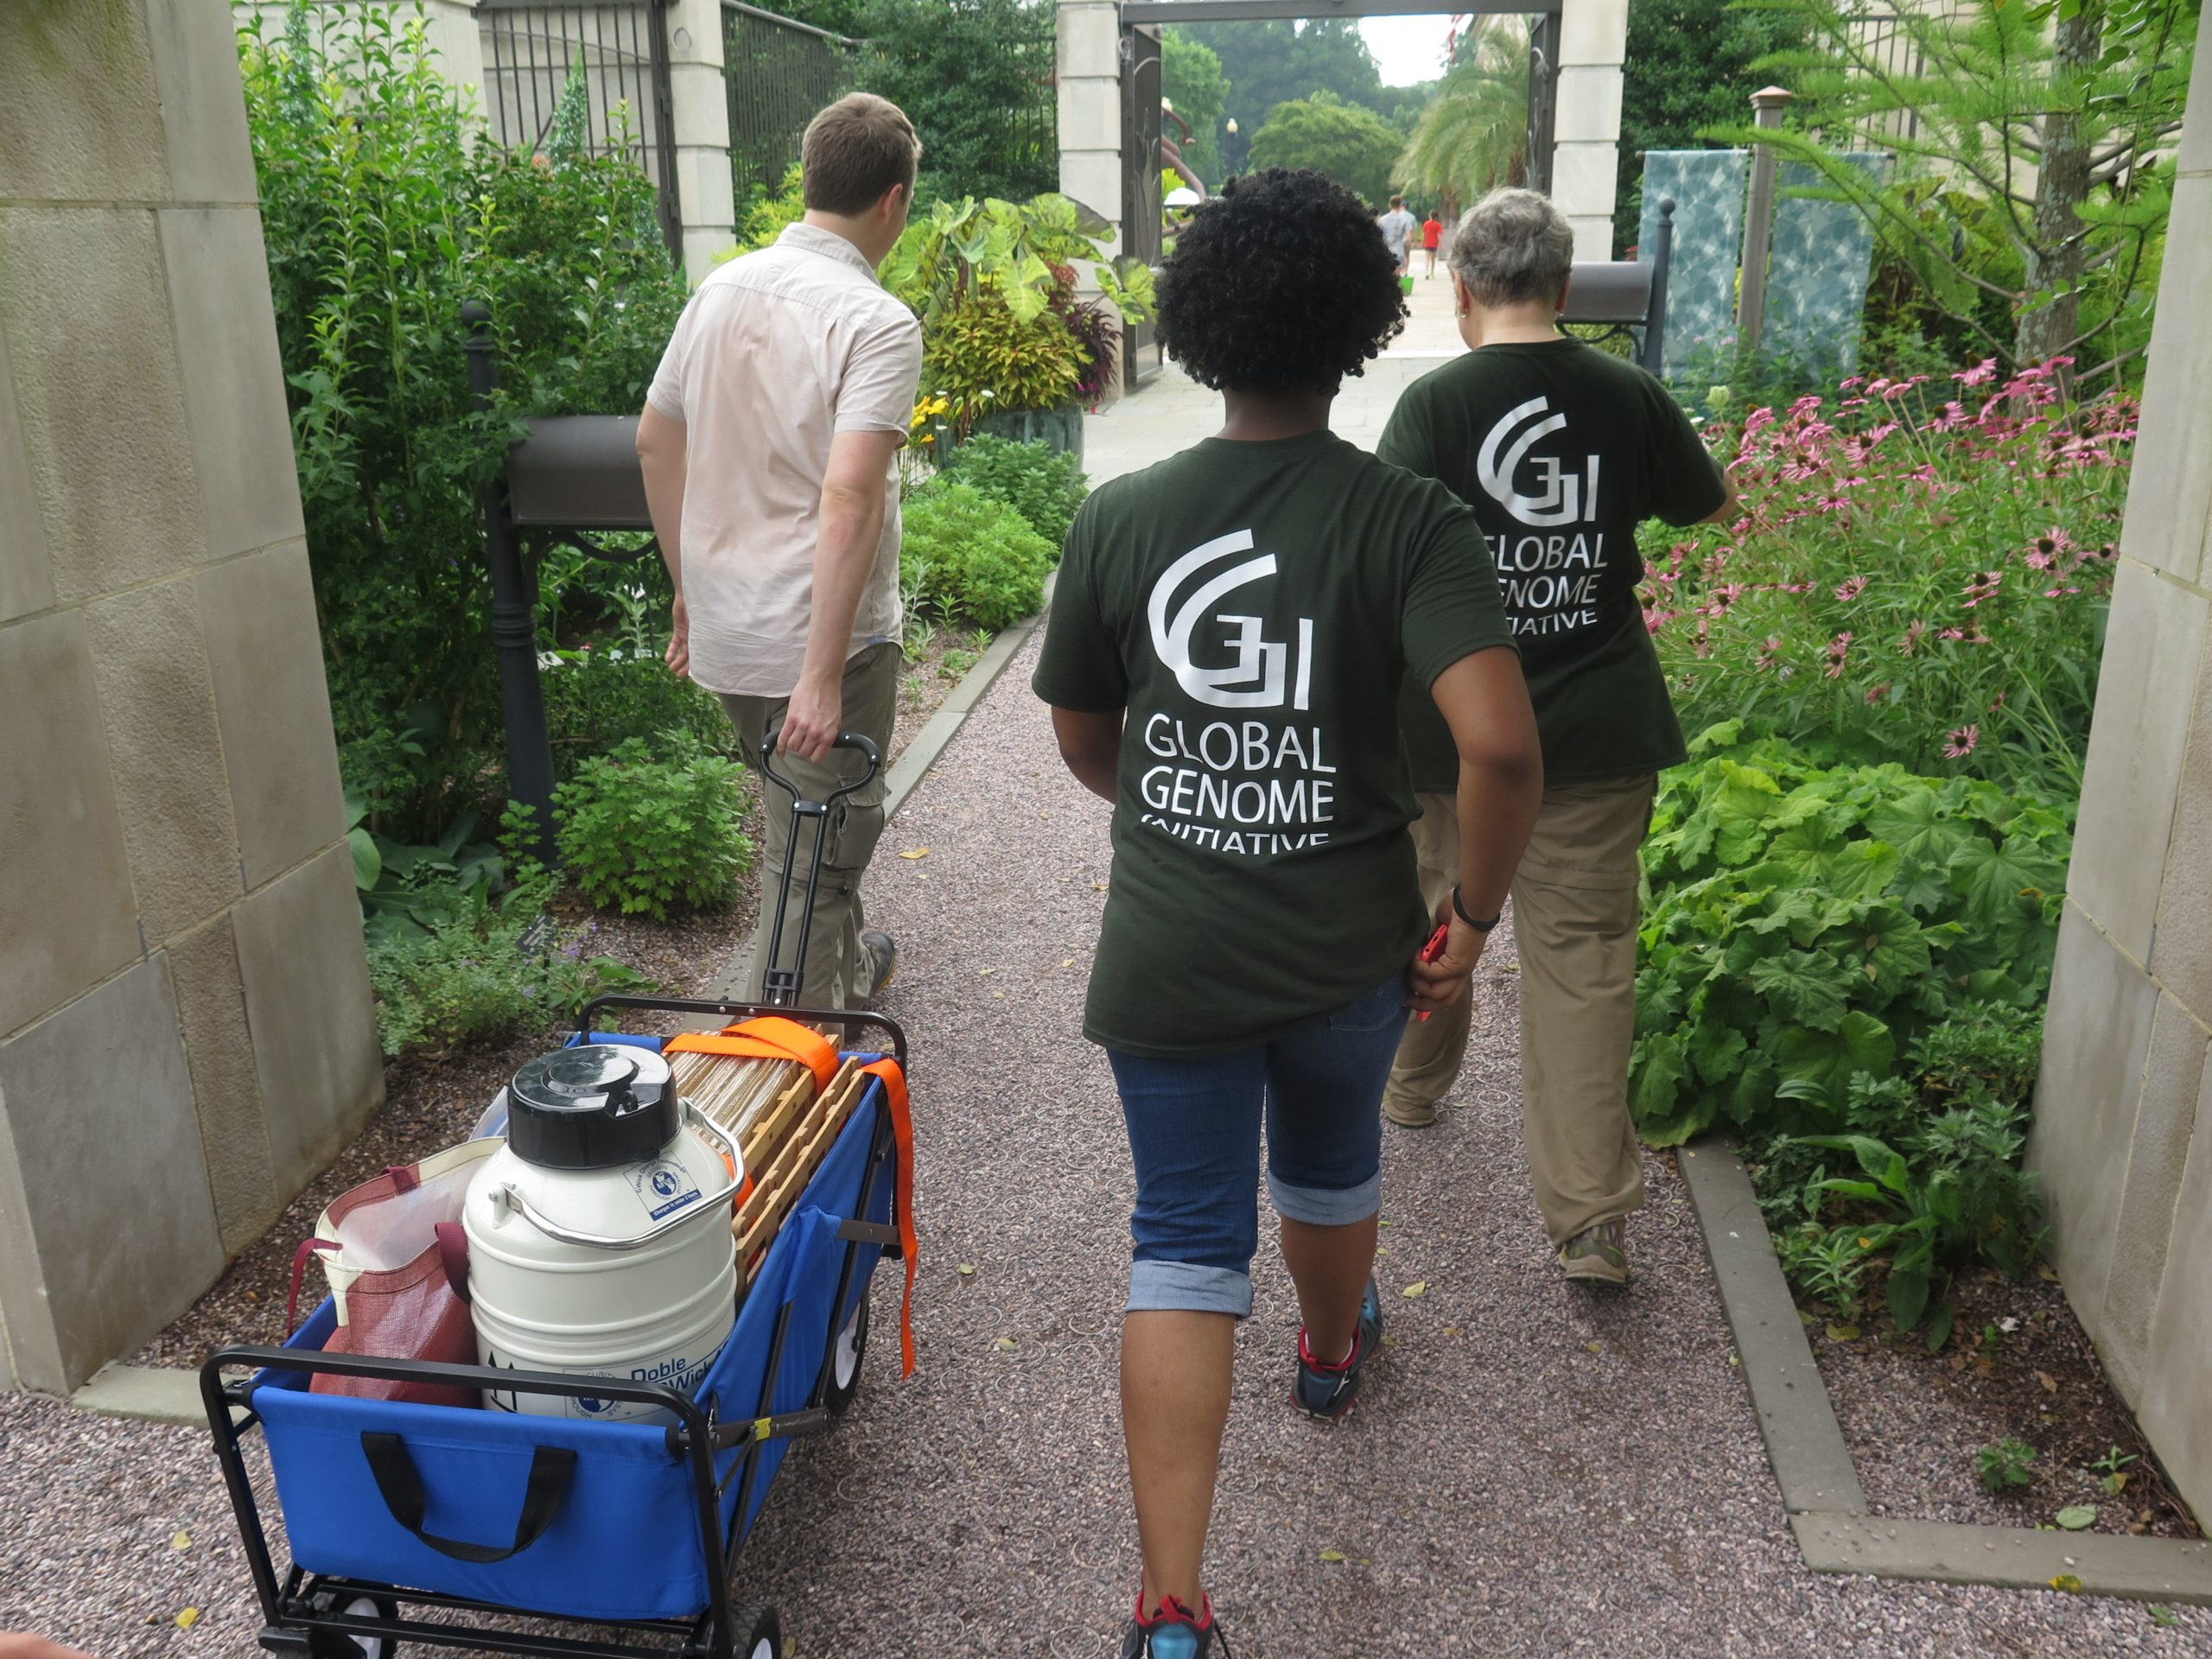 GGI-Gardens collection team sampling at the United States Botanic Garden in Washington, DC. L to R: GGI-Gardens Director, Dr. Morgan Gostel, Smithsonian YES! Intern, Asia Hill, and GGI-Gardens Founder, Dr. Vicki Funk.